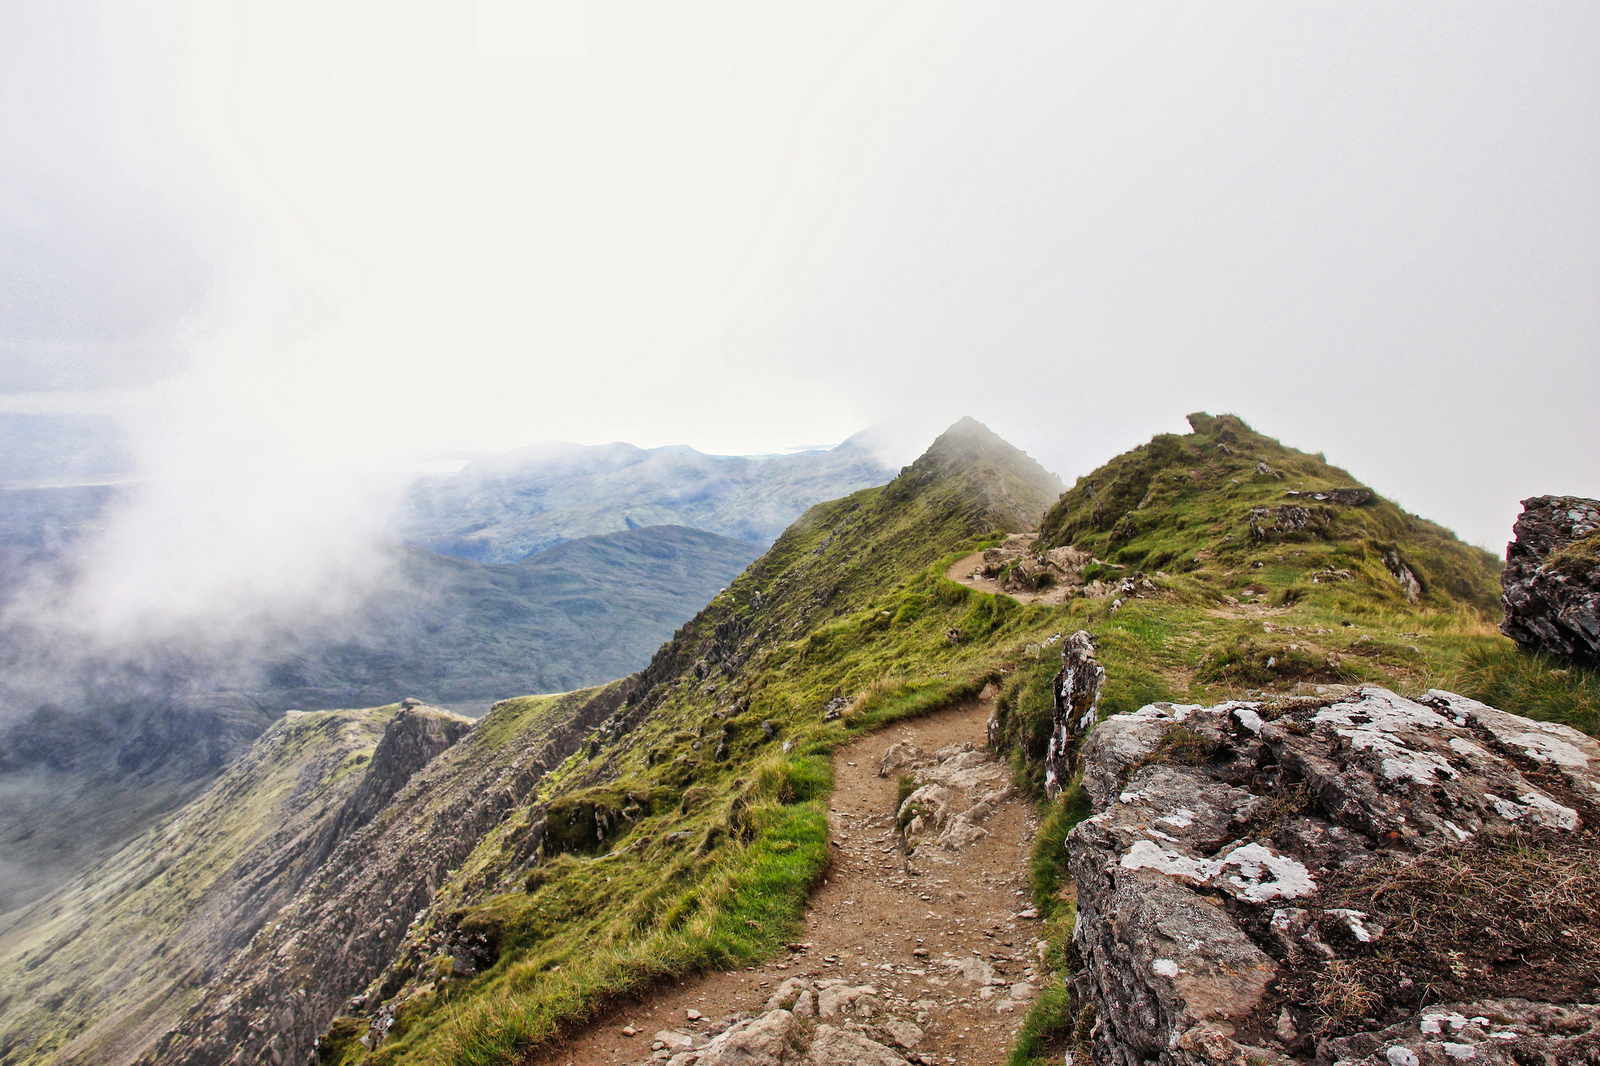 The Rangers Path to the summit of Snowdon